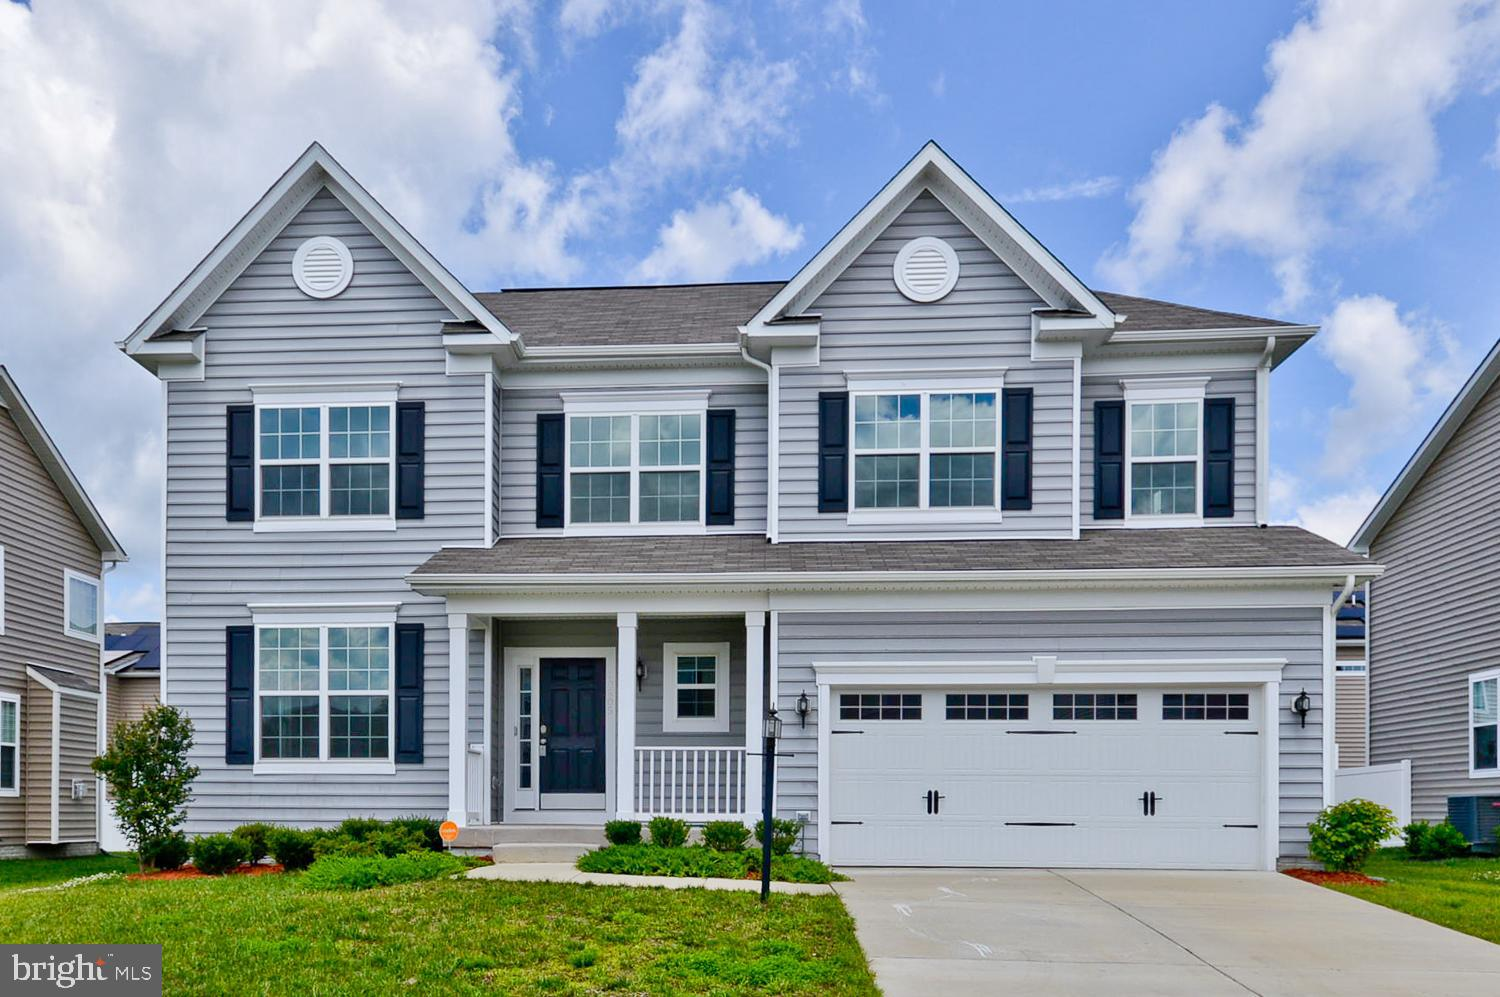 Welcome to this Beautiful like New K Hovnanian home in Piney Grove Estates.This home is less than 2